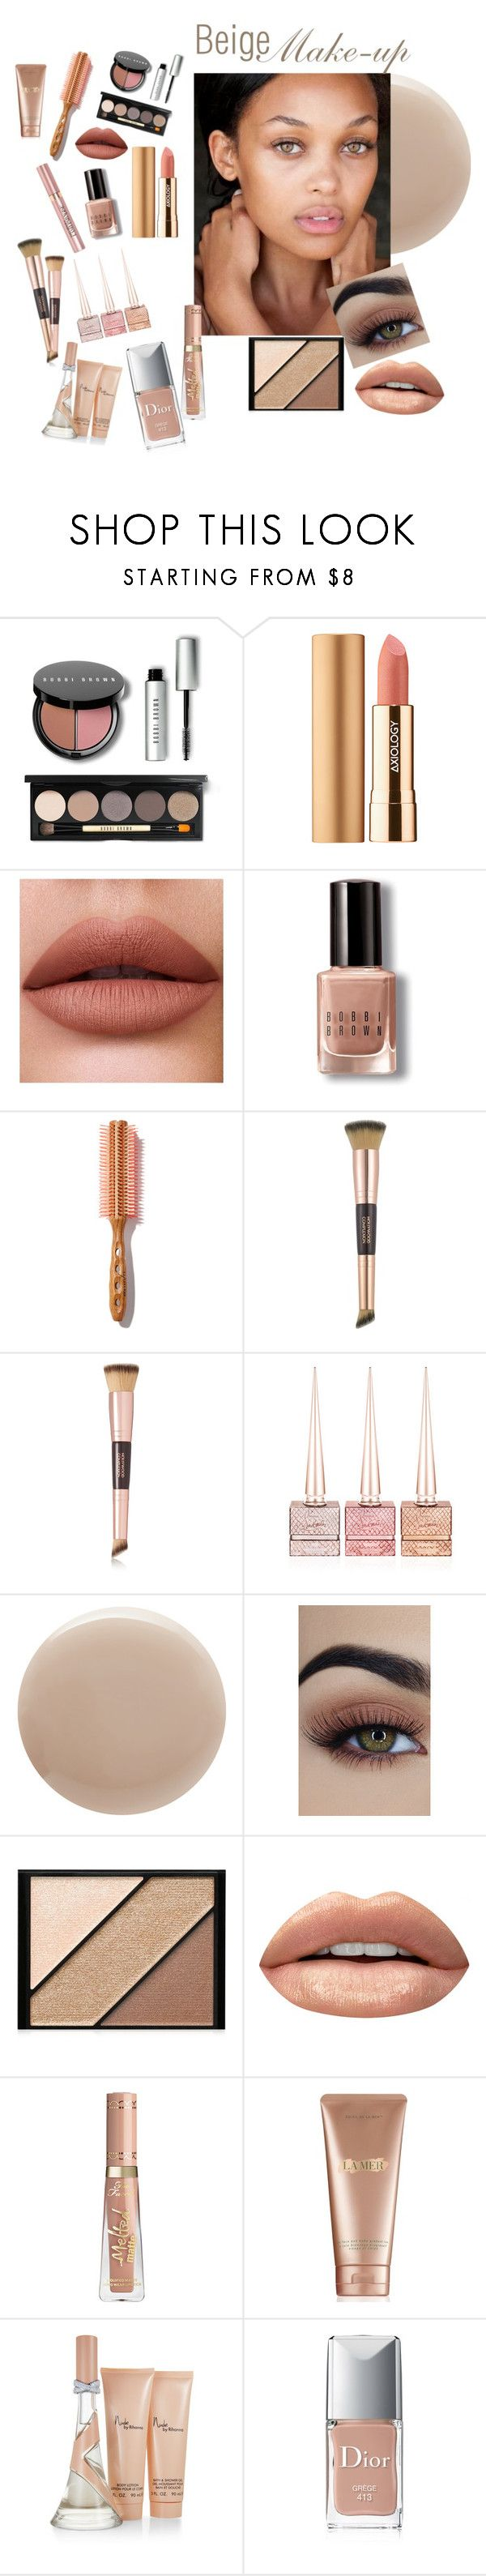 """Beige Make-up"" by andrealorena-7879 ❤ liked on Polyvore featuring beauty, Bobbi Brown Cosmetics, Axiology, Charlotte Tilbury, Christian Louboutin, Oribe, Elizabeth Arden, Huda Beauty, La Mer and Christian Dior"